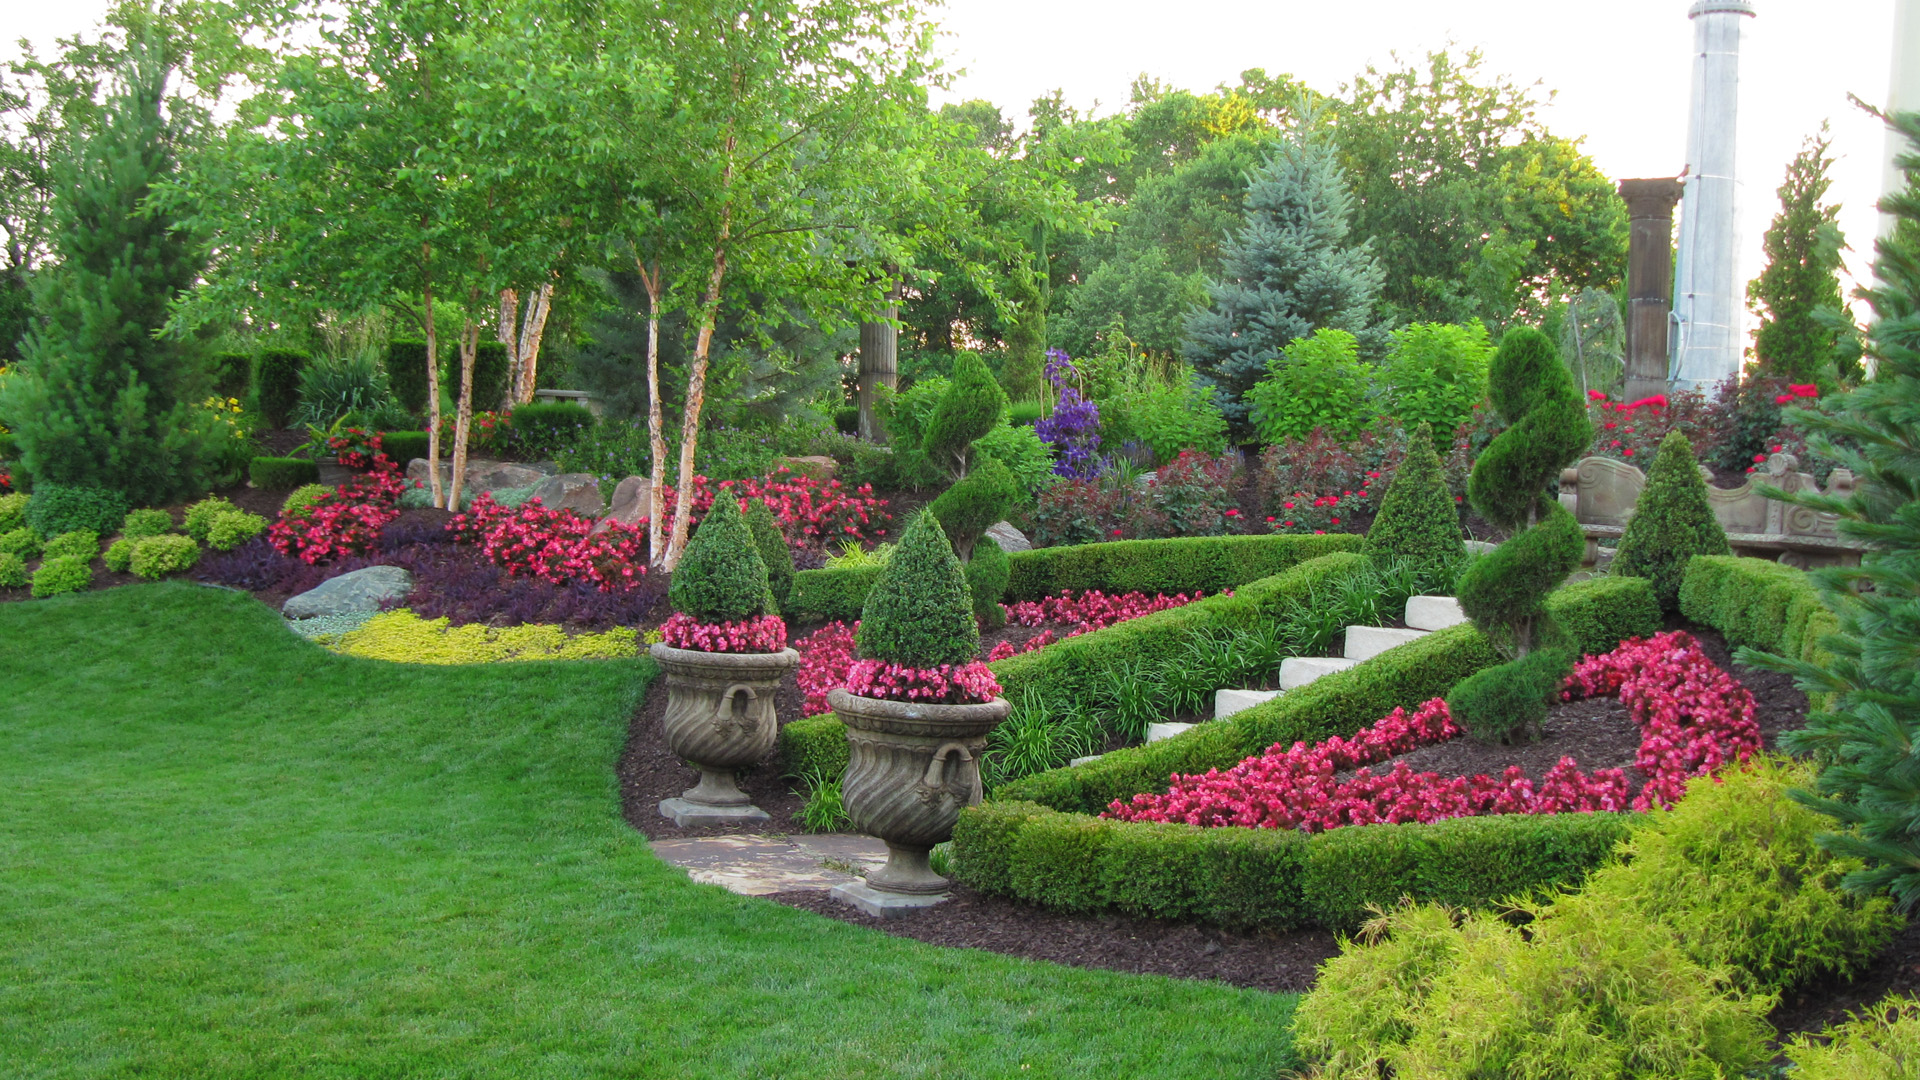 Professional commercial landscaping design in kansas city for In the garden landscape and design